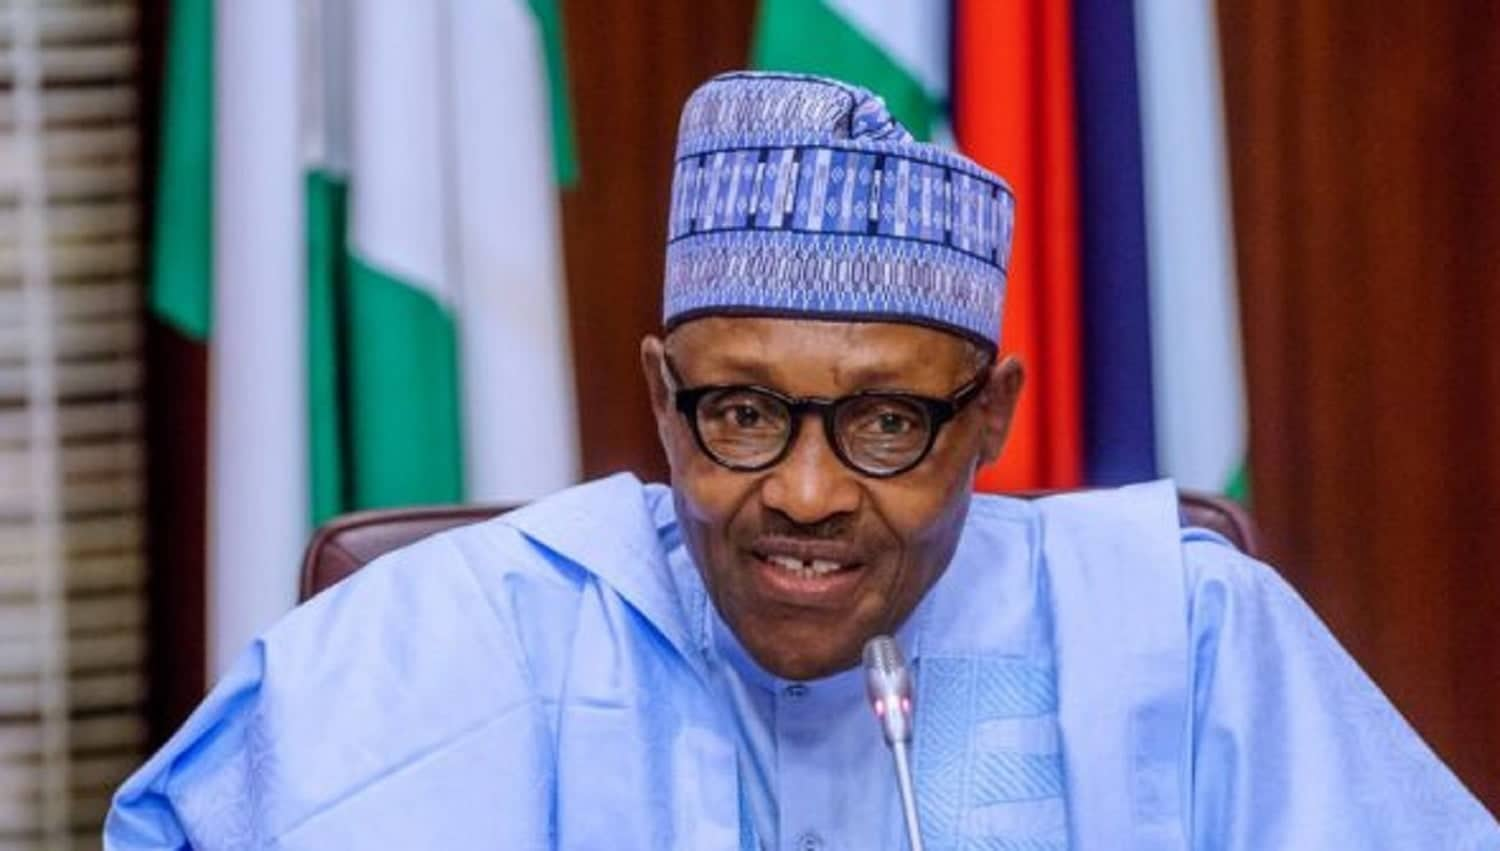 President Muhammadu Buhari's  Two Week Shutdown Order In Lagos, Abuja And Ogun State, Action In The Right Direction. Nan Reports That President Buhari, In A Presidential Broadcast On The C